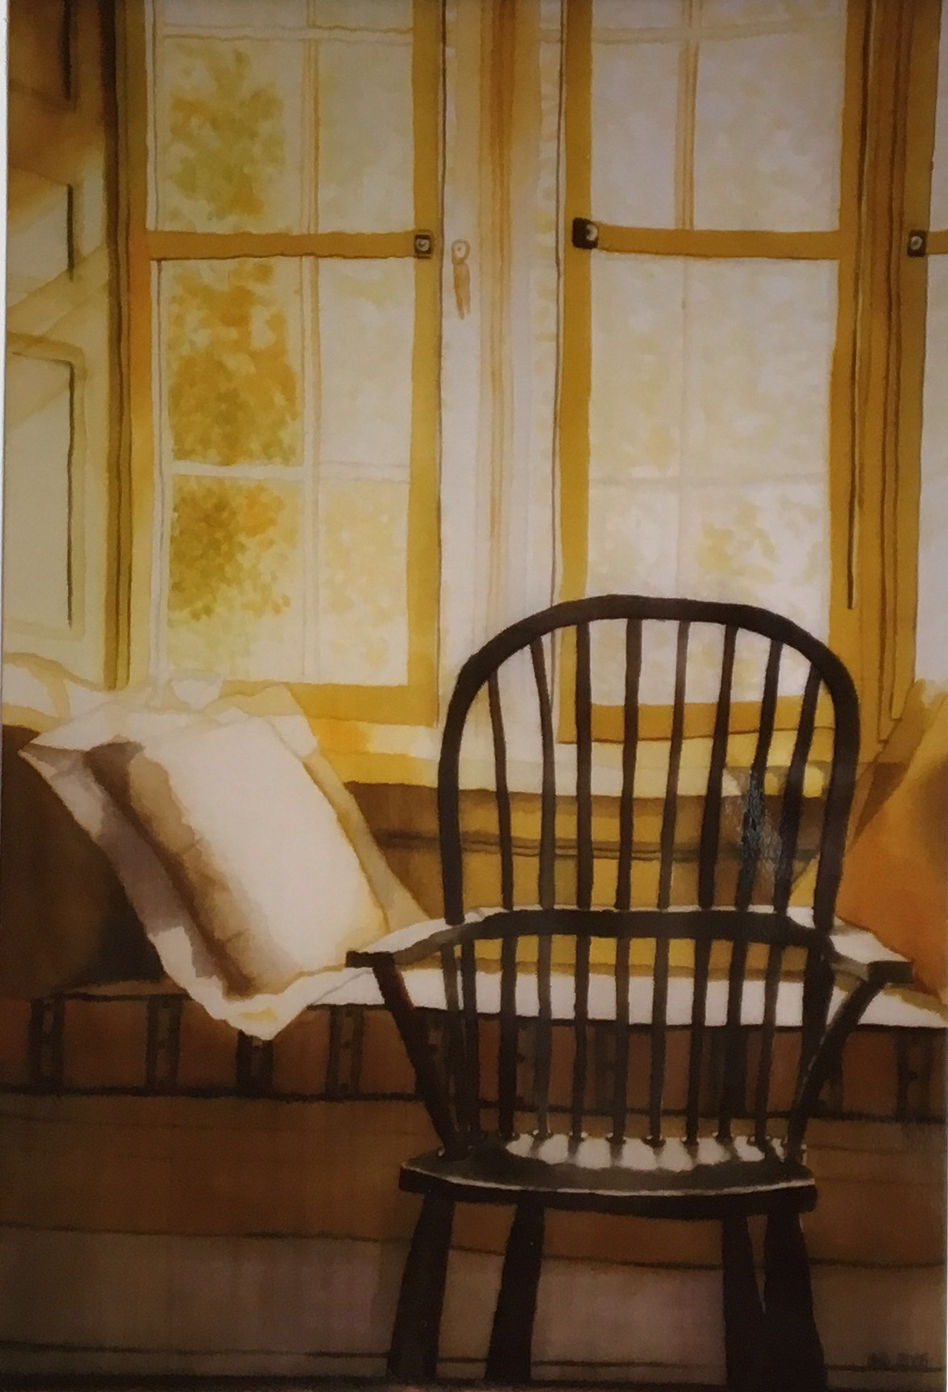 Window and the Chair